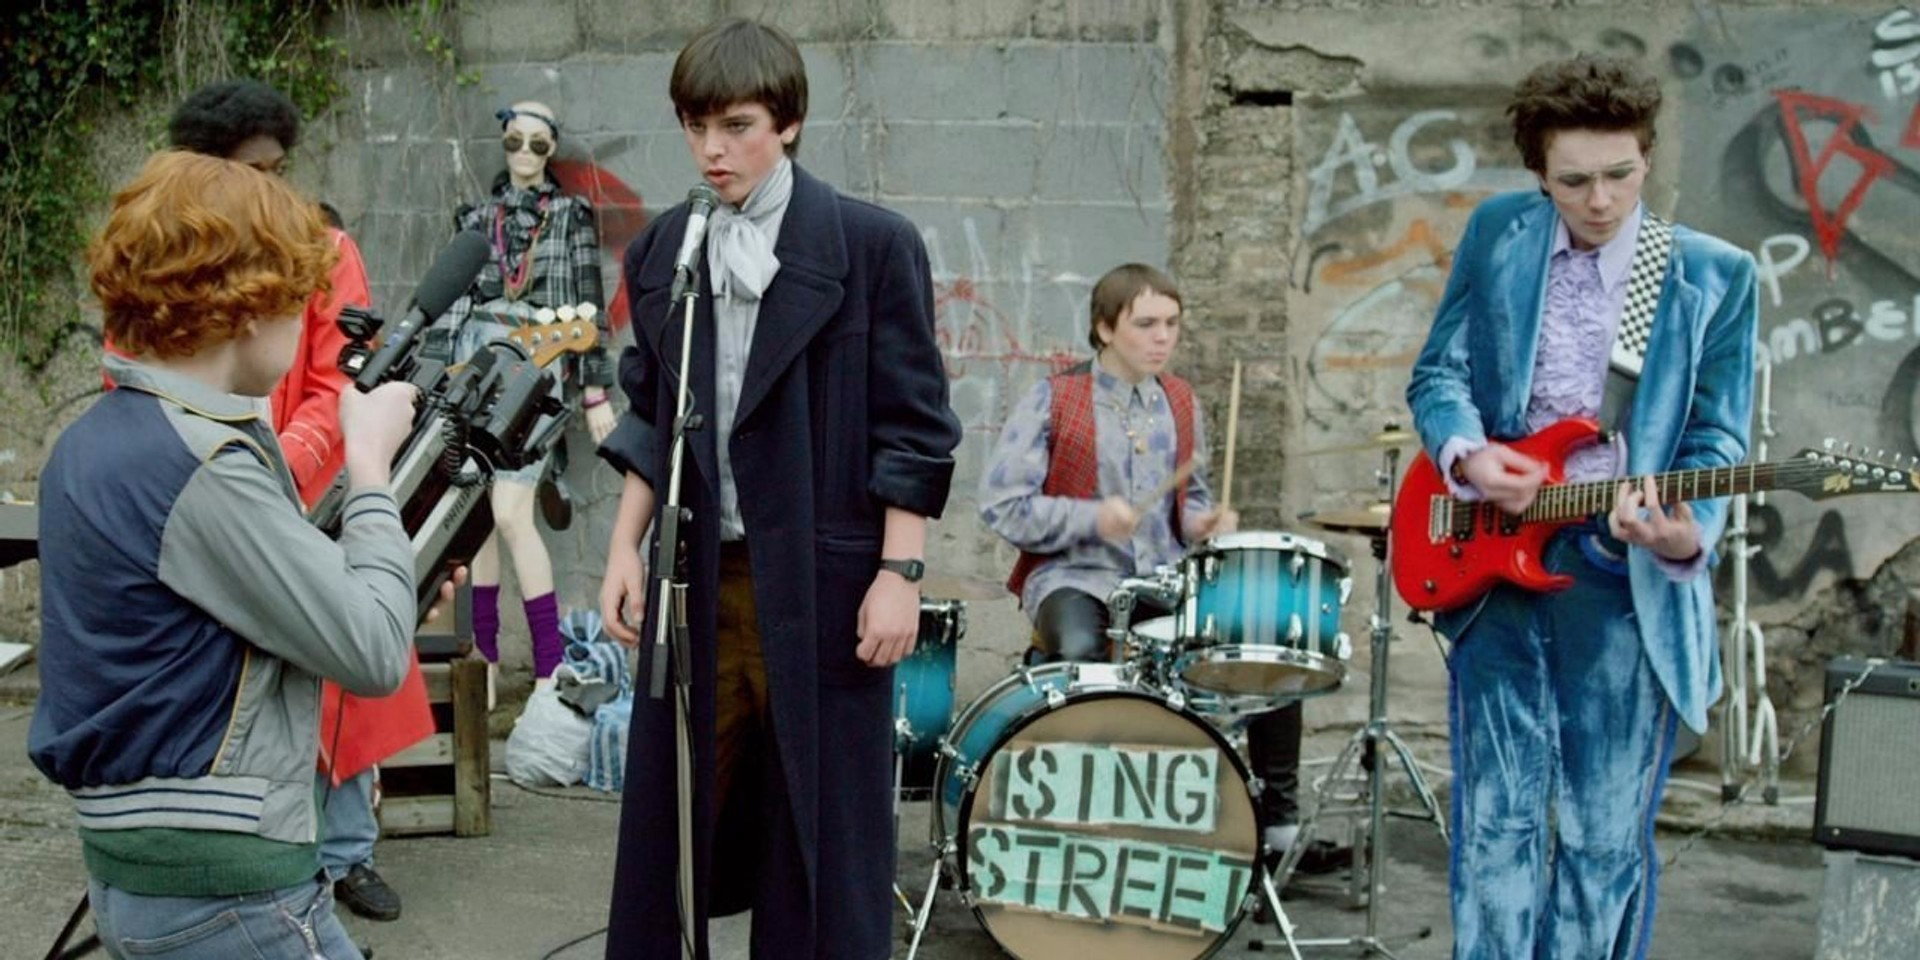 Crowd pleasing and endlessly charming, 'Sing Street' is a great 80s pop song wrapped in film